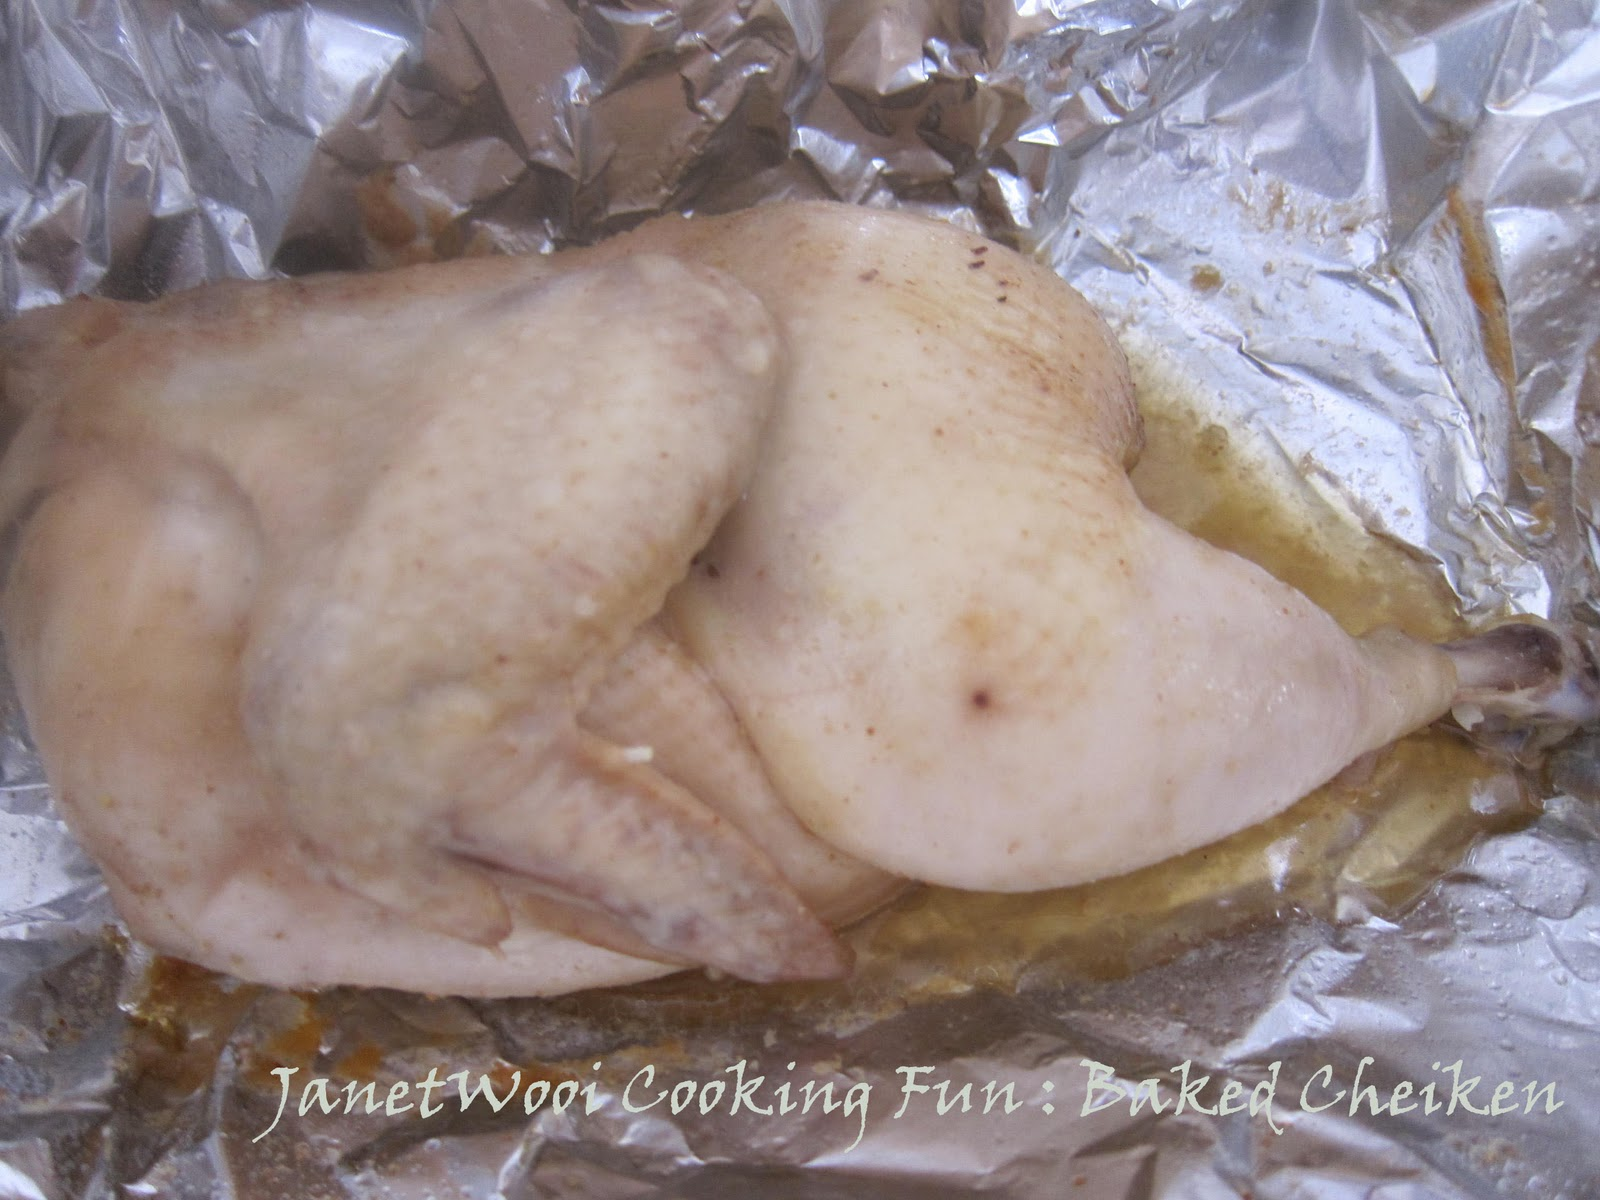 Sharp Healsio Water Oven Cooking Chicken Recipe : Baked Chicken with Sharp Healsio Oven